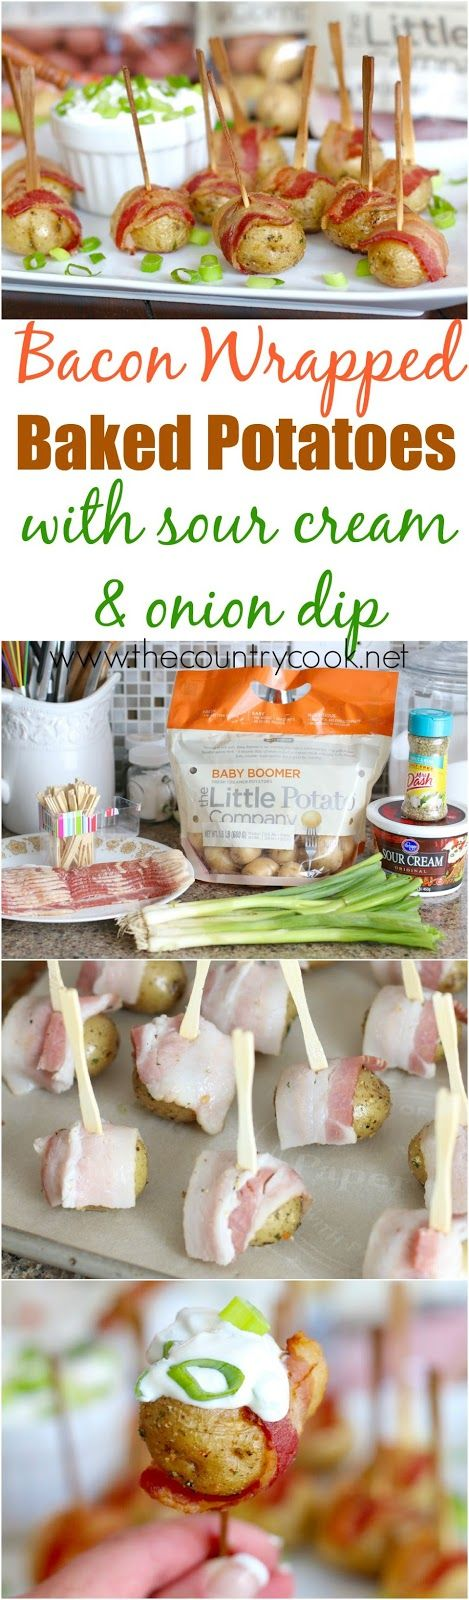 Bacon Wrapped Potatoes with Sour Cream & Onion Dip recipe from The Country Cook. Holy cow were these AMAZING!!! Next time I might even throw a little cheese on top when they come out of the oven. So, so good!!